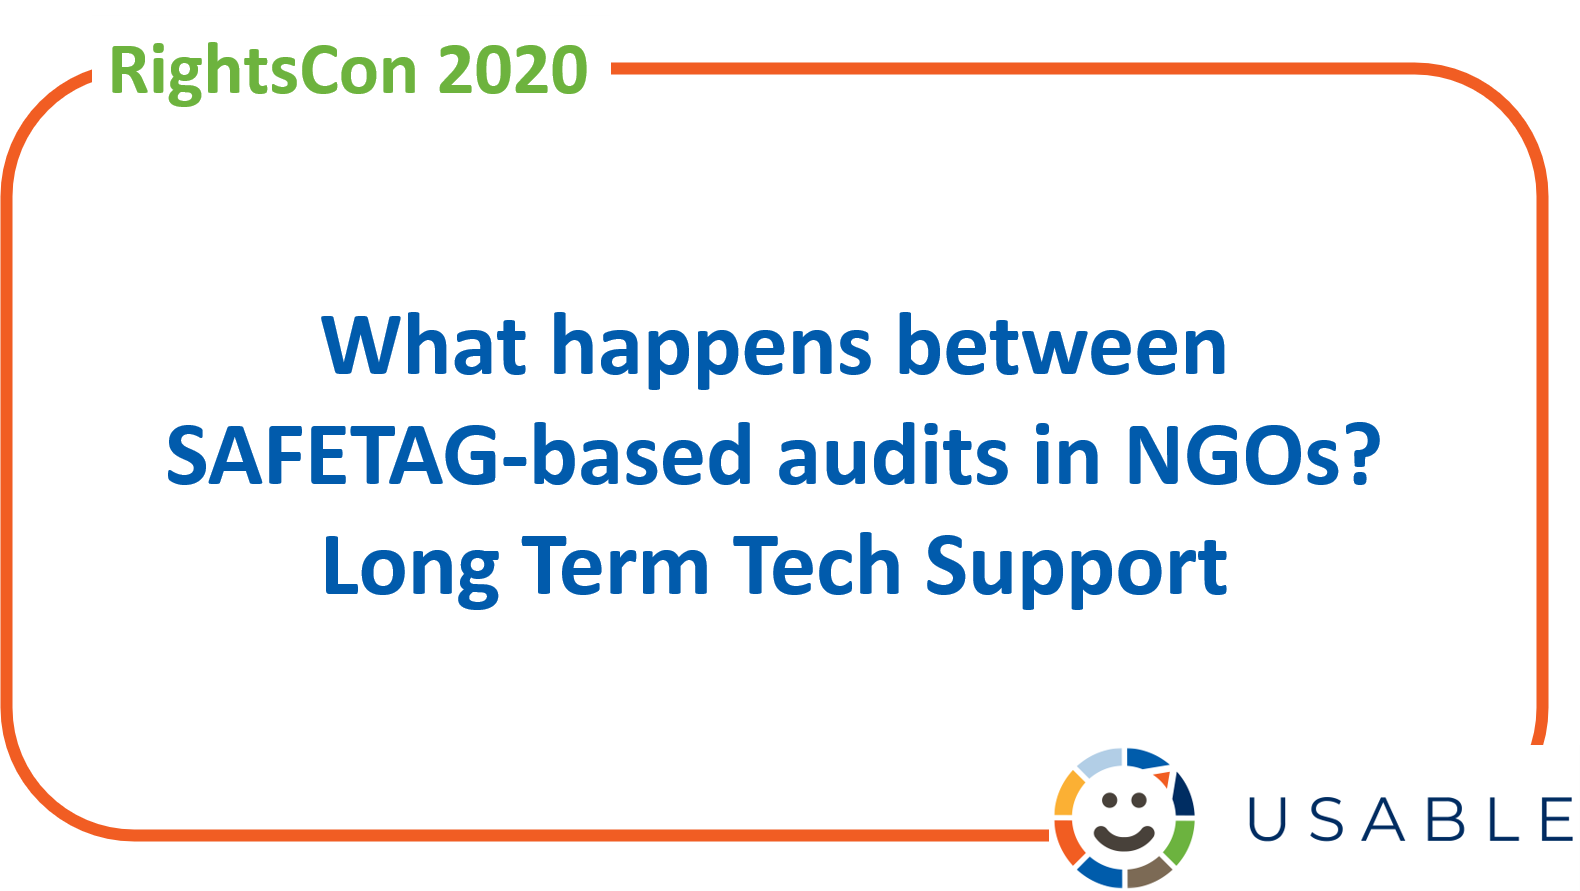 Image with USABLE logo and title What happens between SAFETAG-based audits in NGOs? Long term tech support